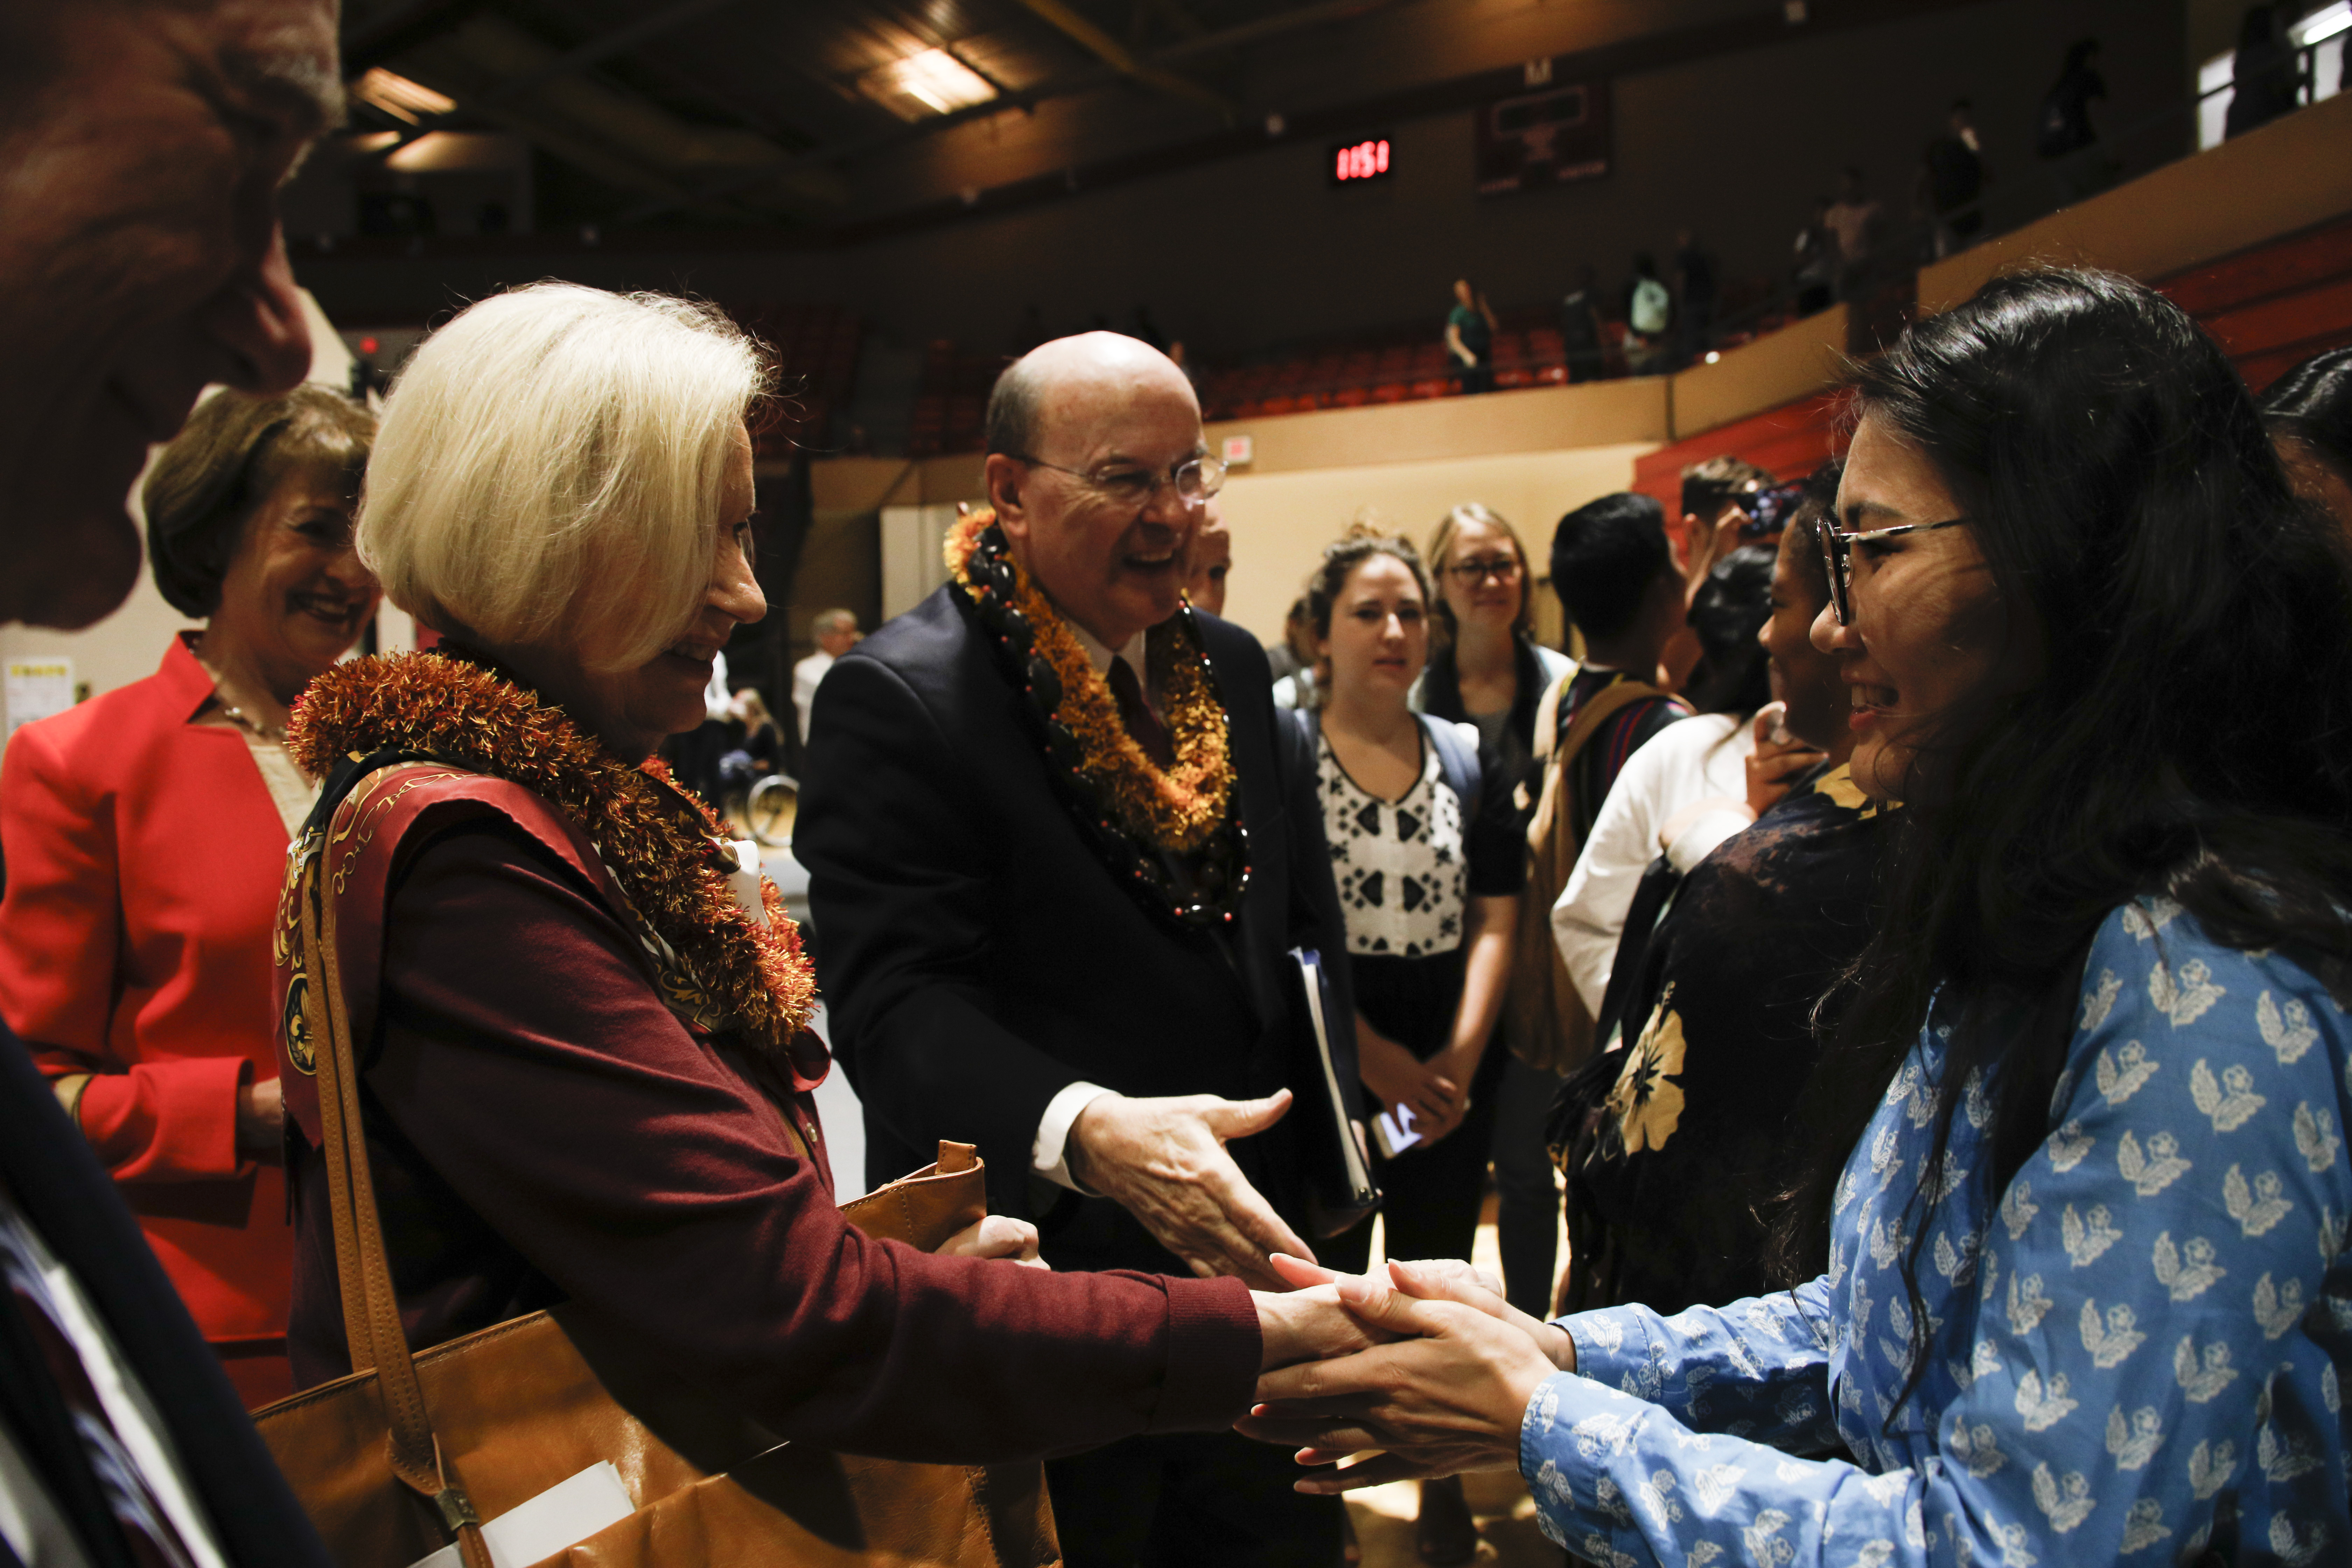 Elder Quentin L. Cook of the Quorum of the Twelve Apostles and his wife, Sister Mary Cook, greet students at a campus devotional at BYU-Hawaii on Nov. 20.